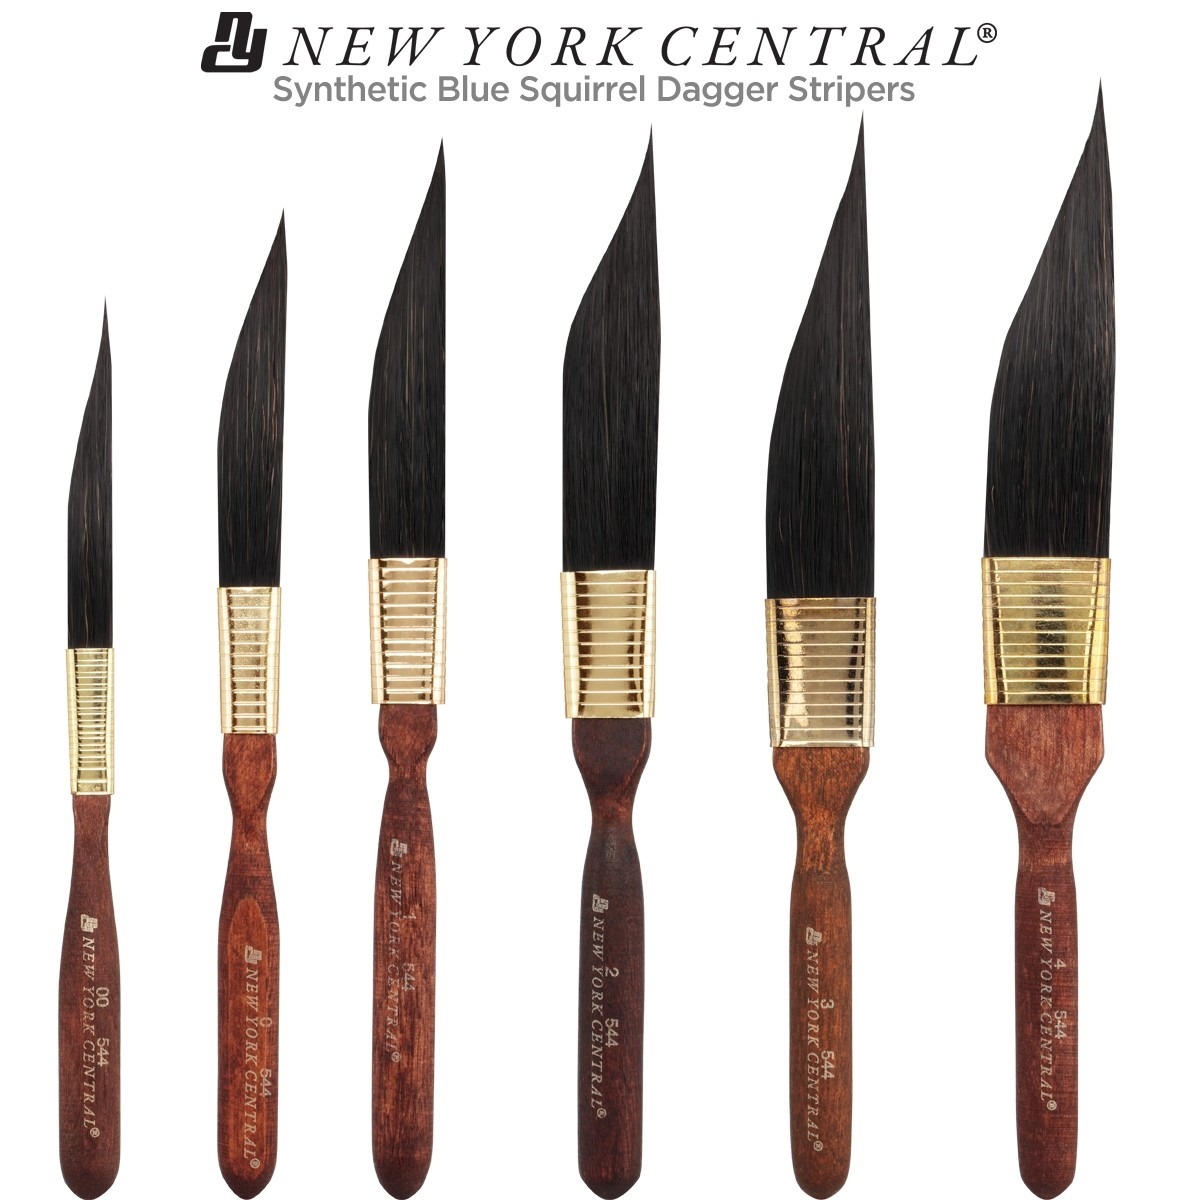 New York Central Synthetic Blue Squirrel Dagger Stripers